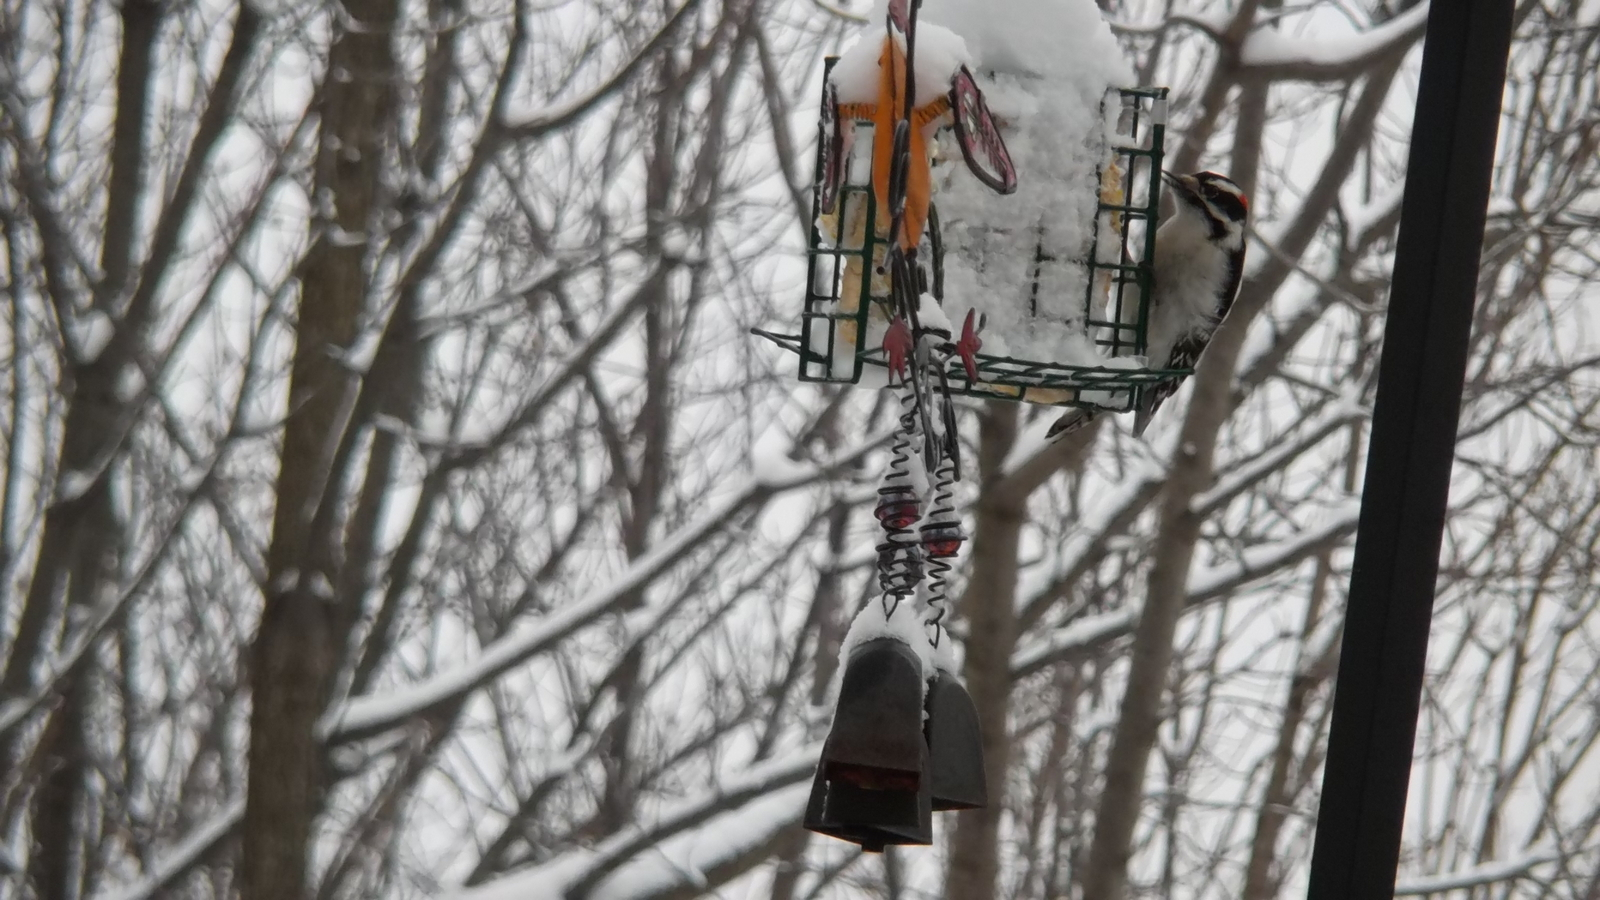 Wood pecker?, suet, wind chimes and WINTER